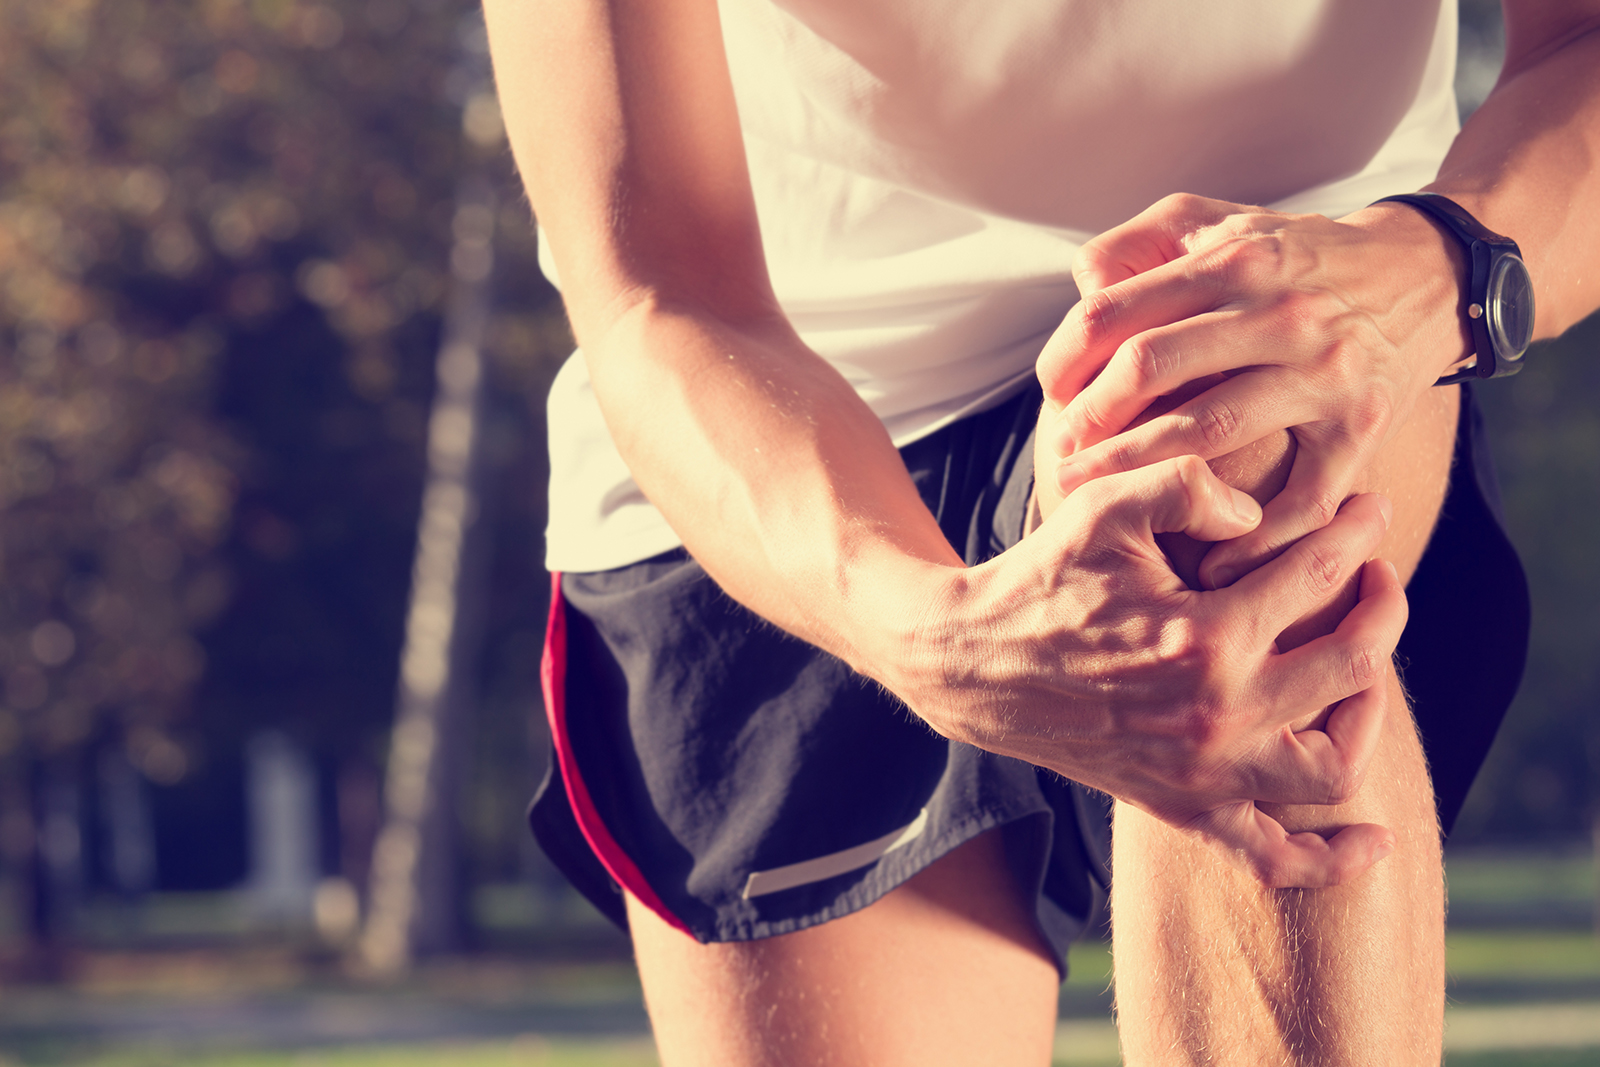 male runner holding knee with both hands